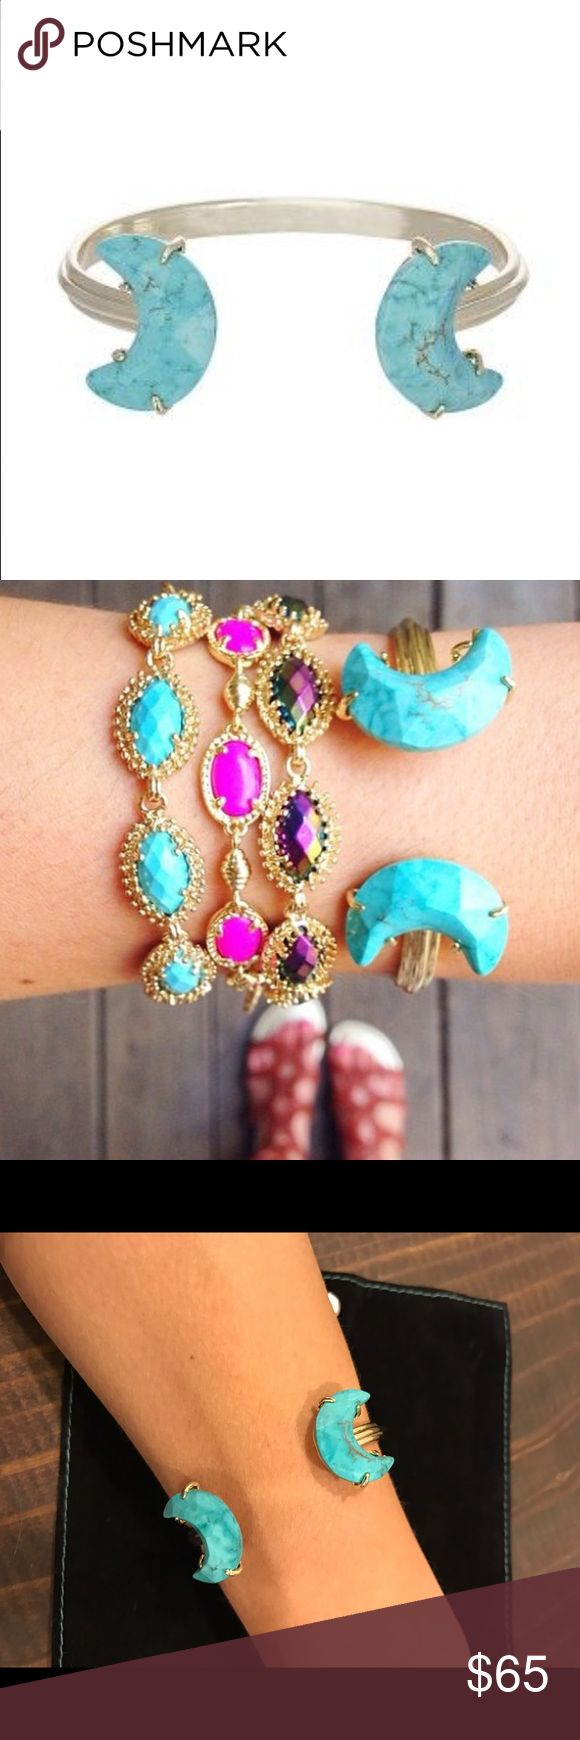 Kendra Scott Carson turquoise cuff bracelet Sold out everywhere! Carson cuff in gold and turquoise. Crescent moon design. No dust bag and no trades. Jewelry Bracelets